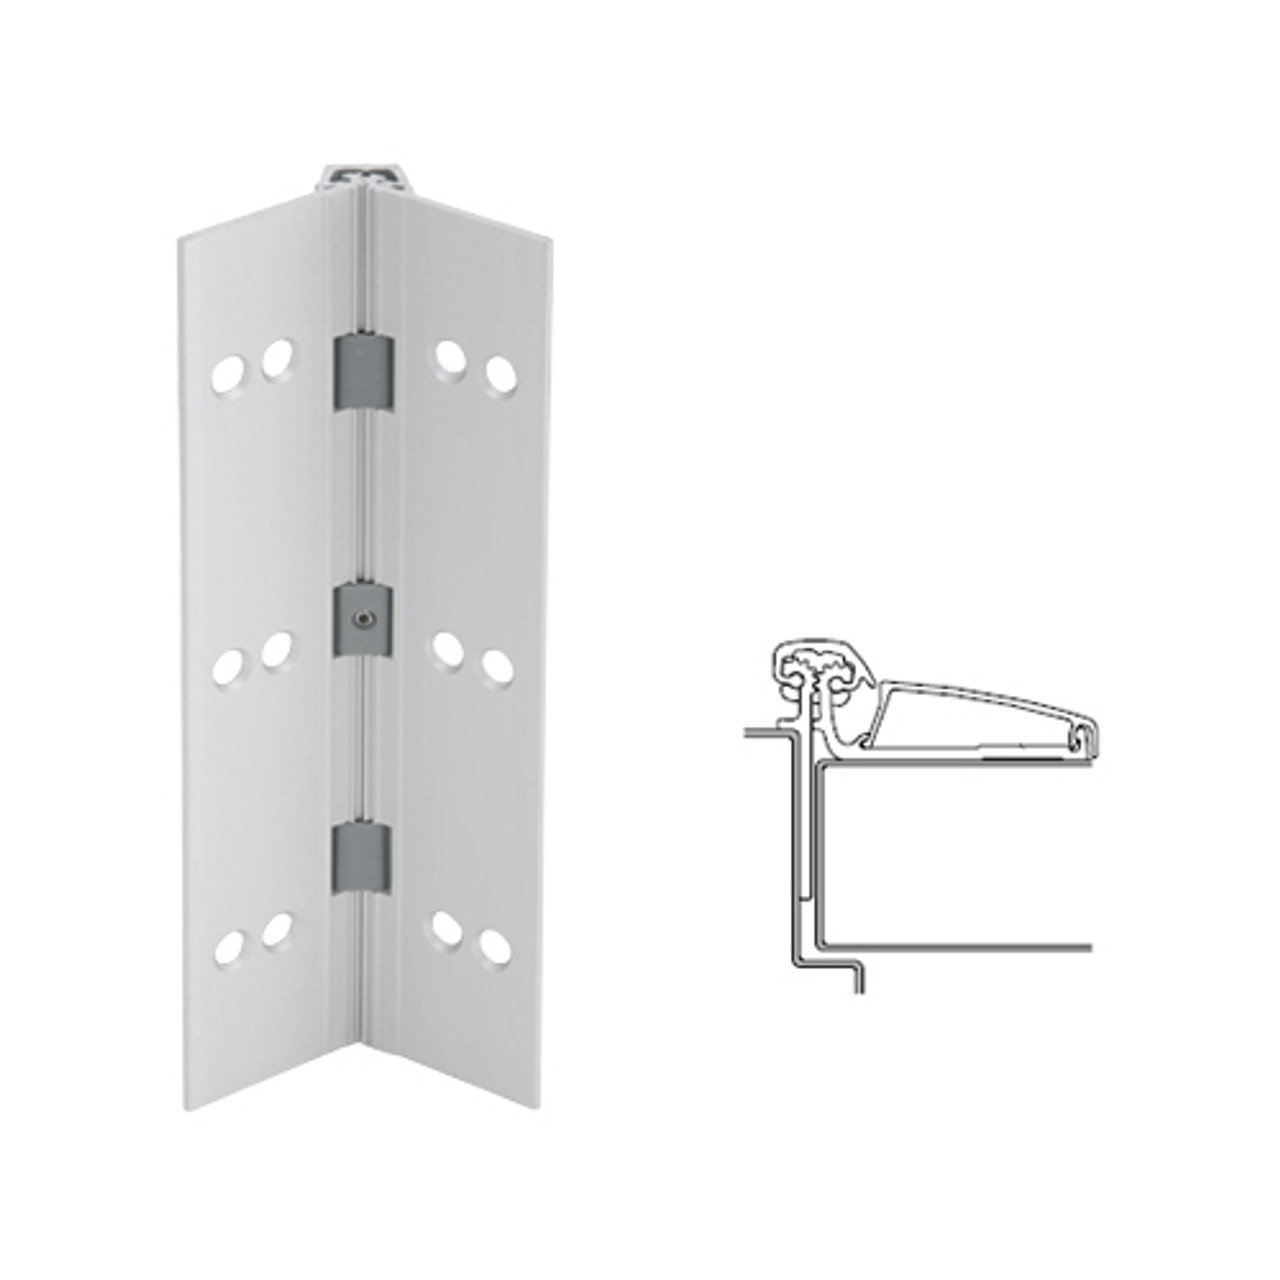 045XY-US28-95-SECWDWD IVES Adjustable Half Surface Continuous Geared Hinges with Security Screws - Hex Pin Drive in Satin Aluminum